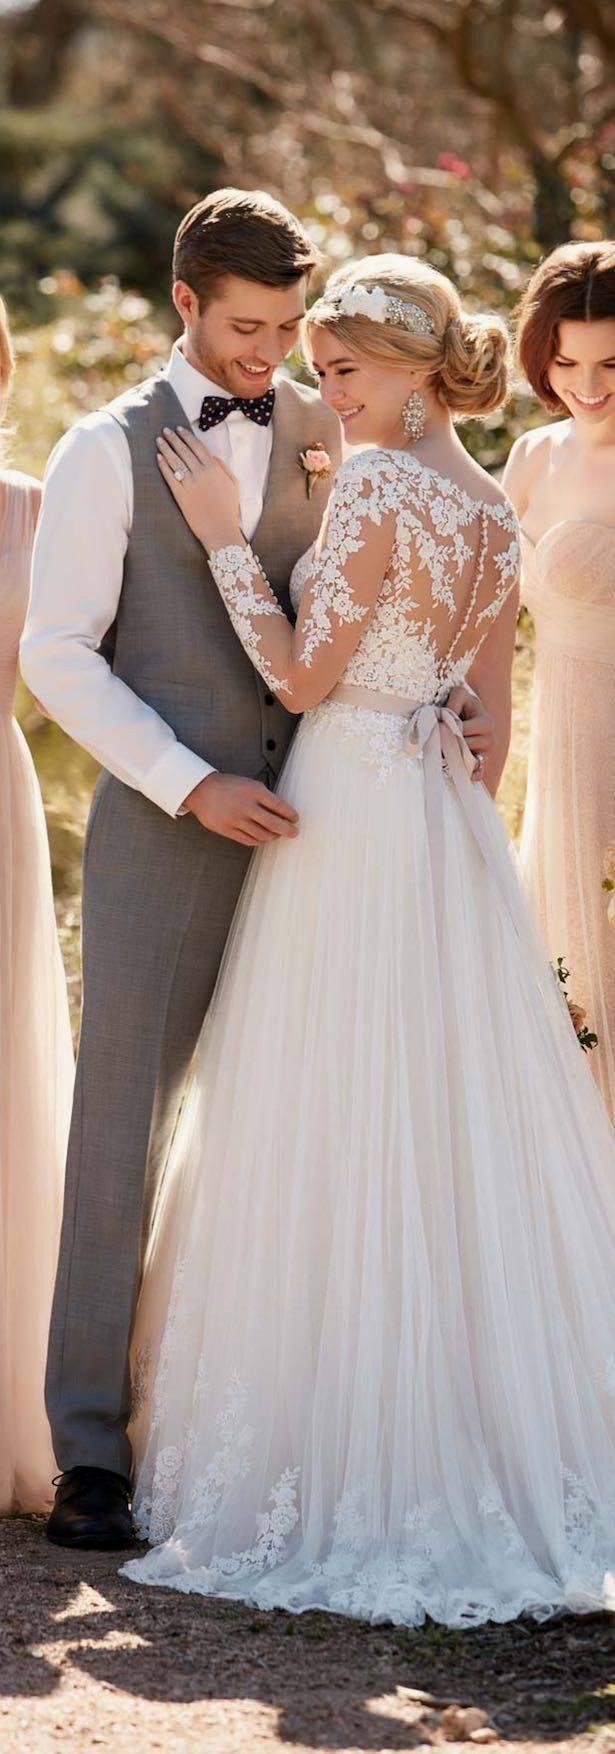 Lace wedding dress v neck november 2018 Lace wedding dress Ignore the bridegroom for the moment lets